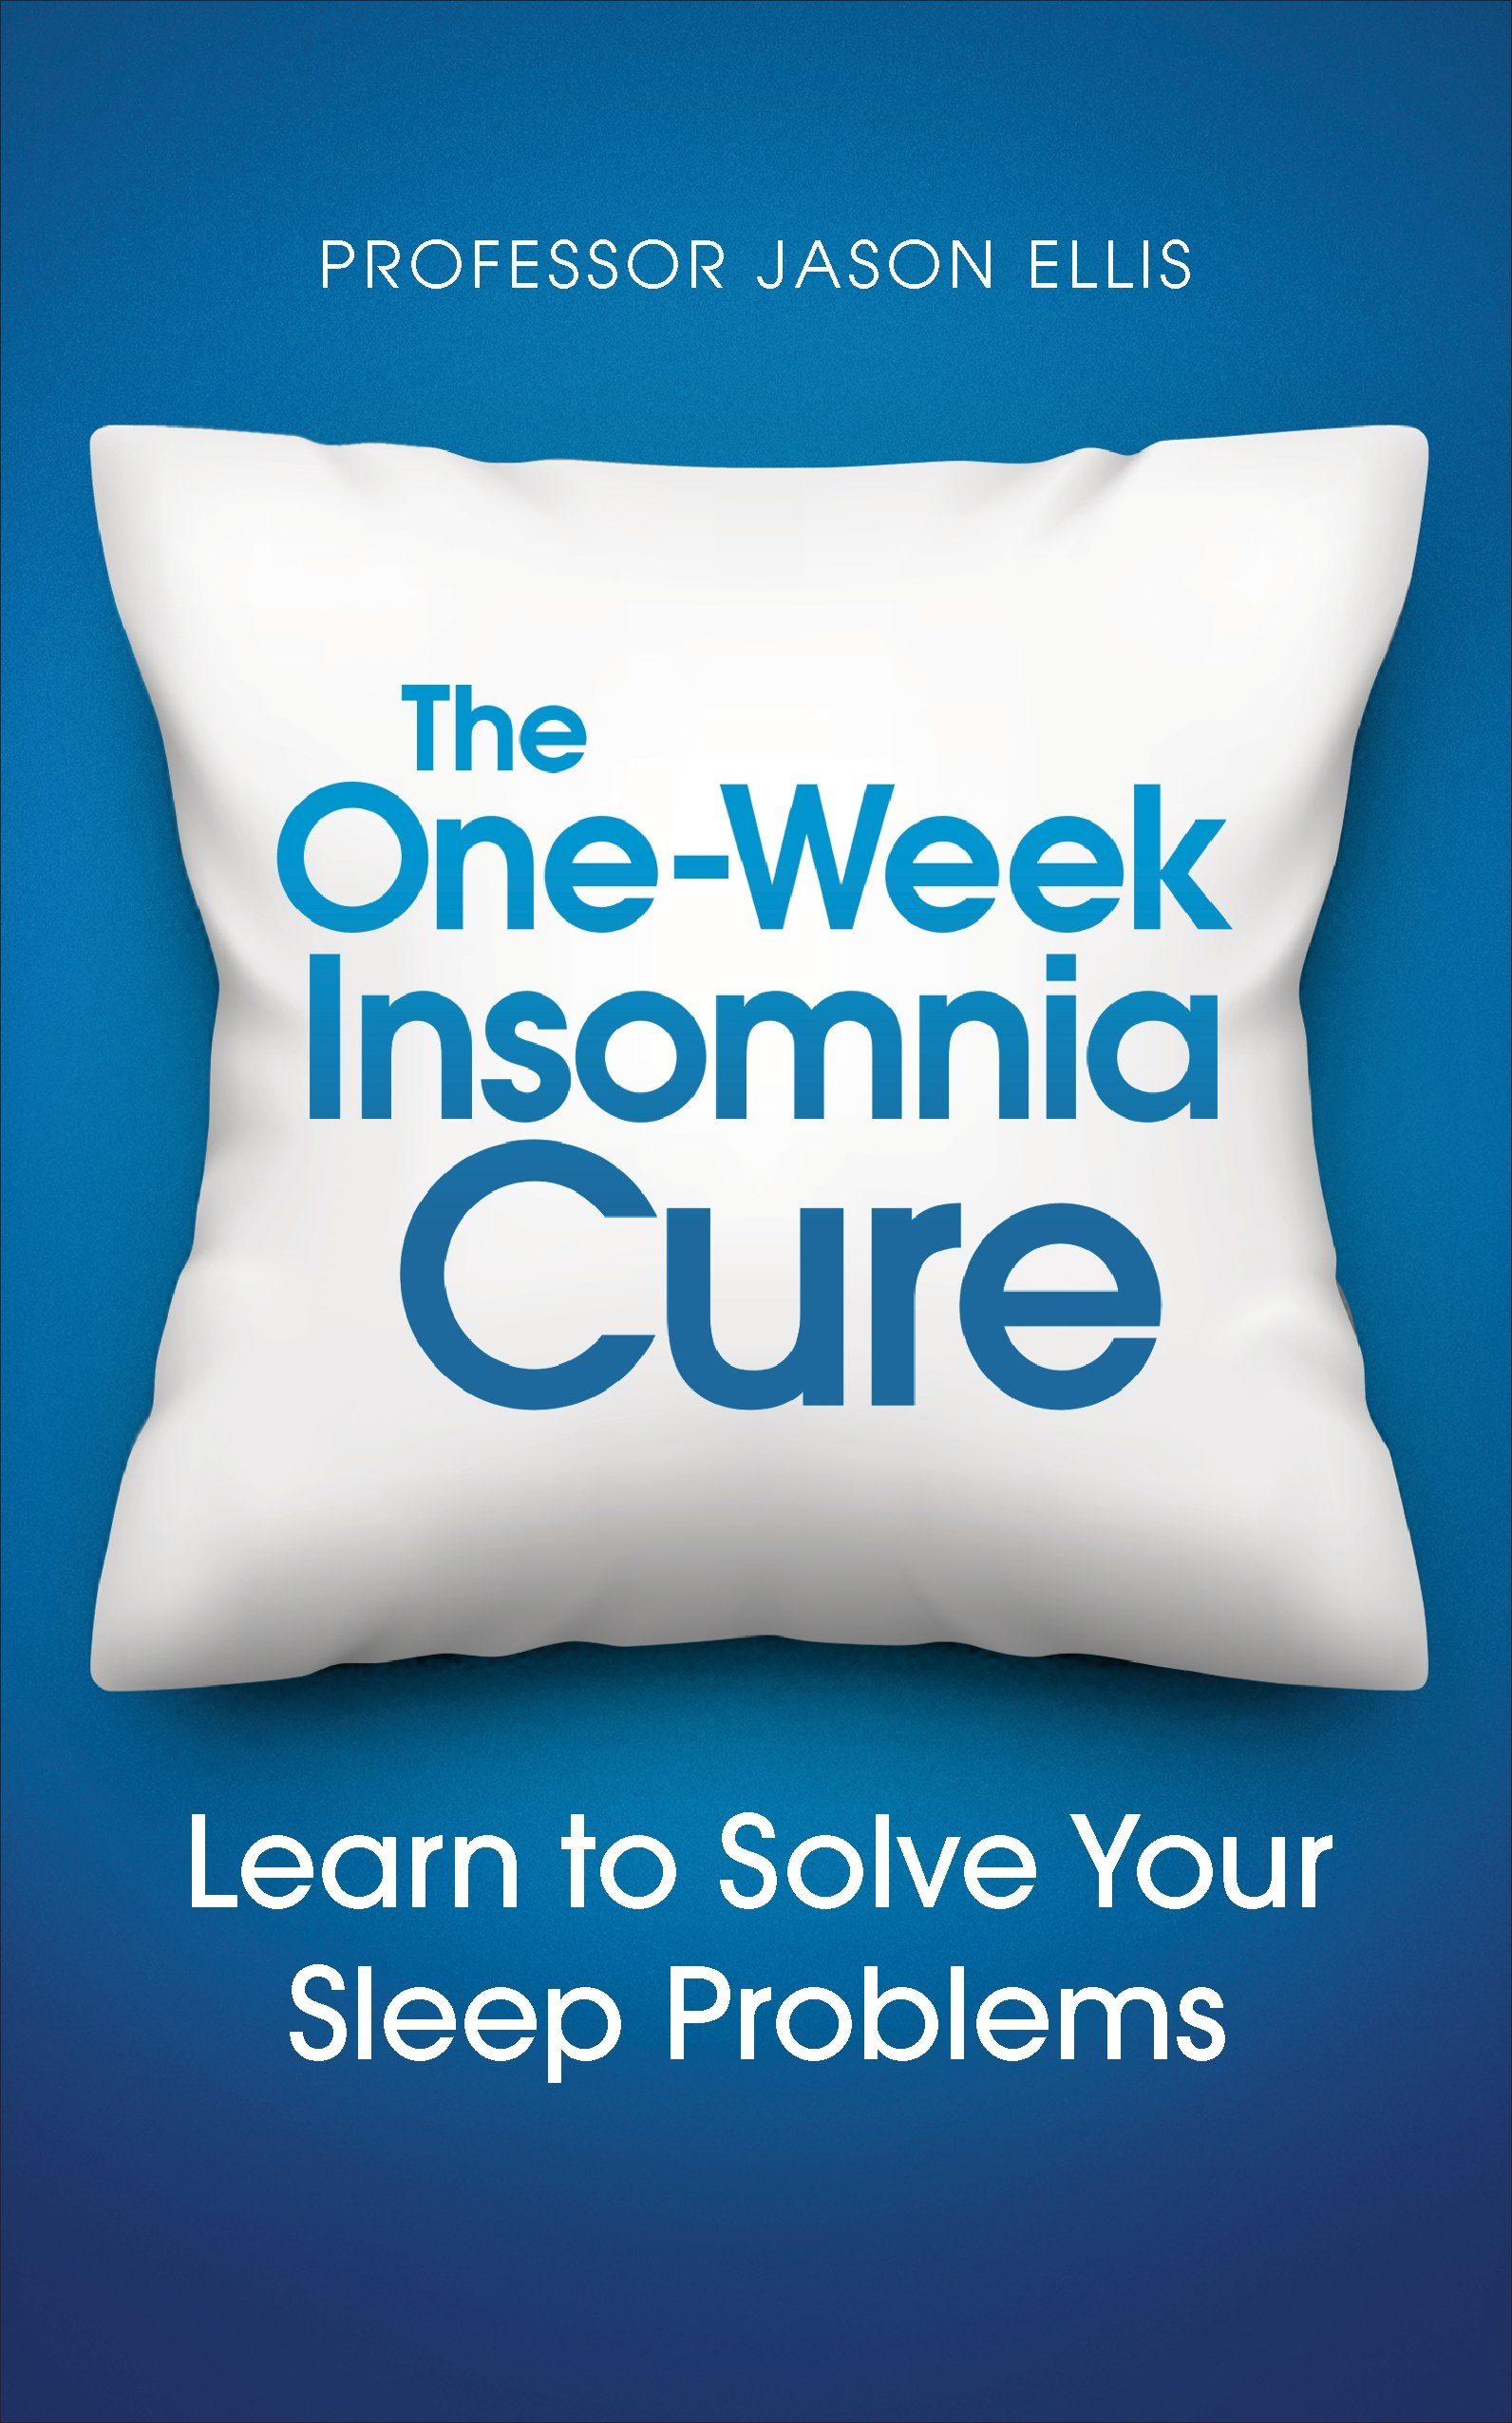 Image OfThe One-Week Insomnia Cure: Learn To Solve Your Sleep Problems